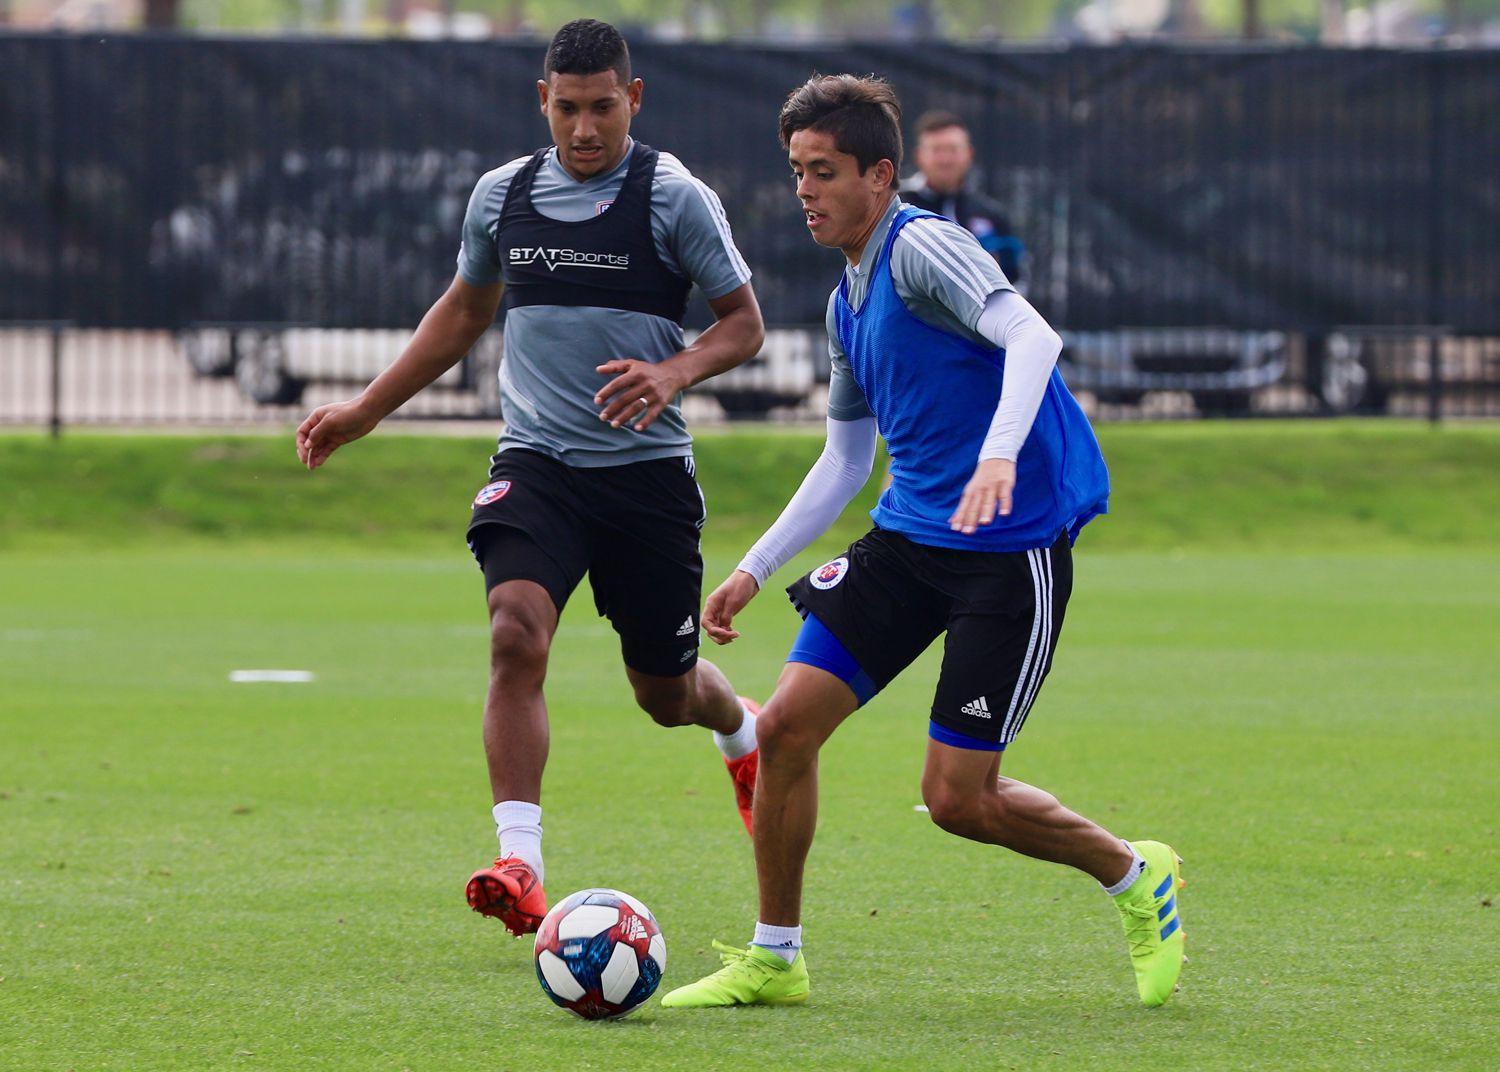 Arturo Rodriguez dribbles against Bryan Acosta in a combined FC Dallas and North Texas SC training session. (4-23-19)